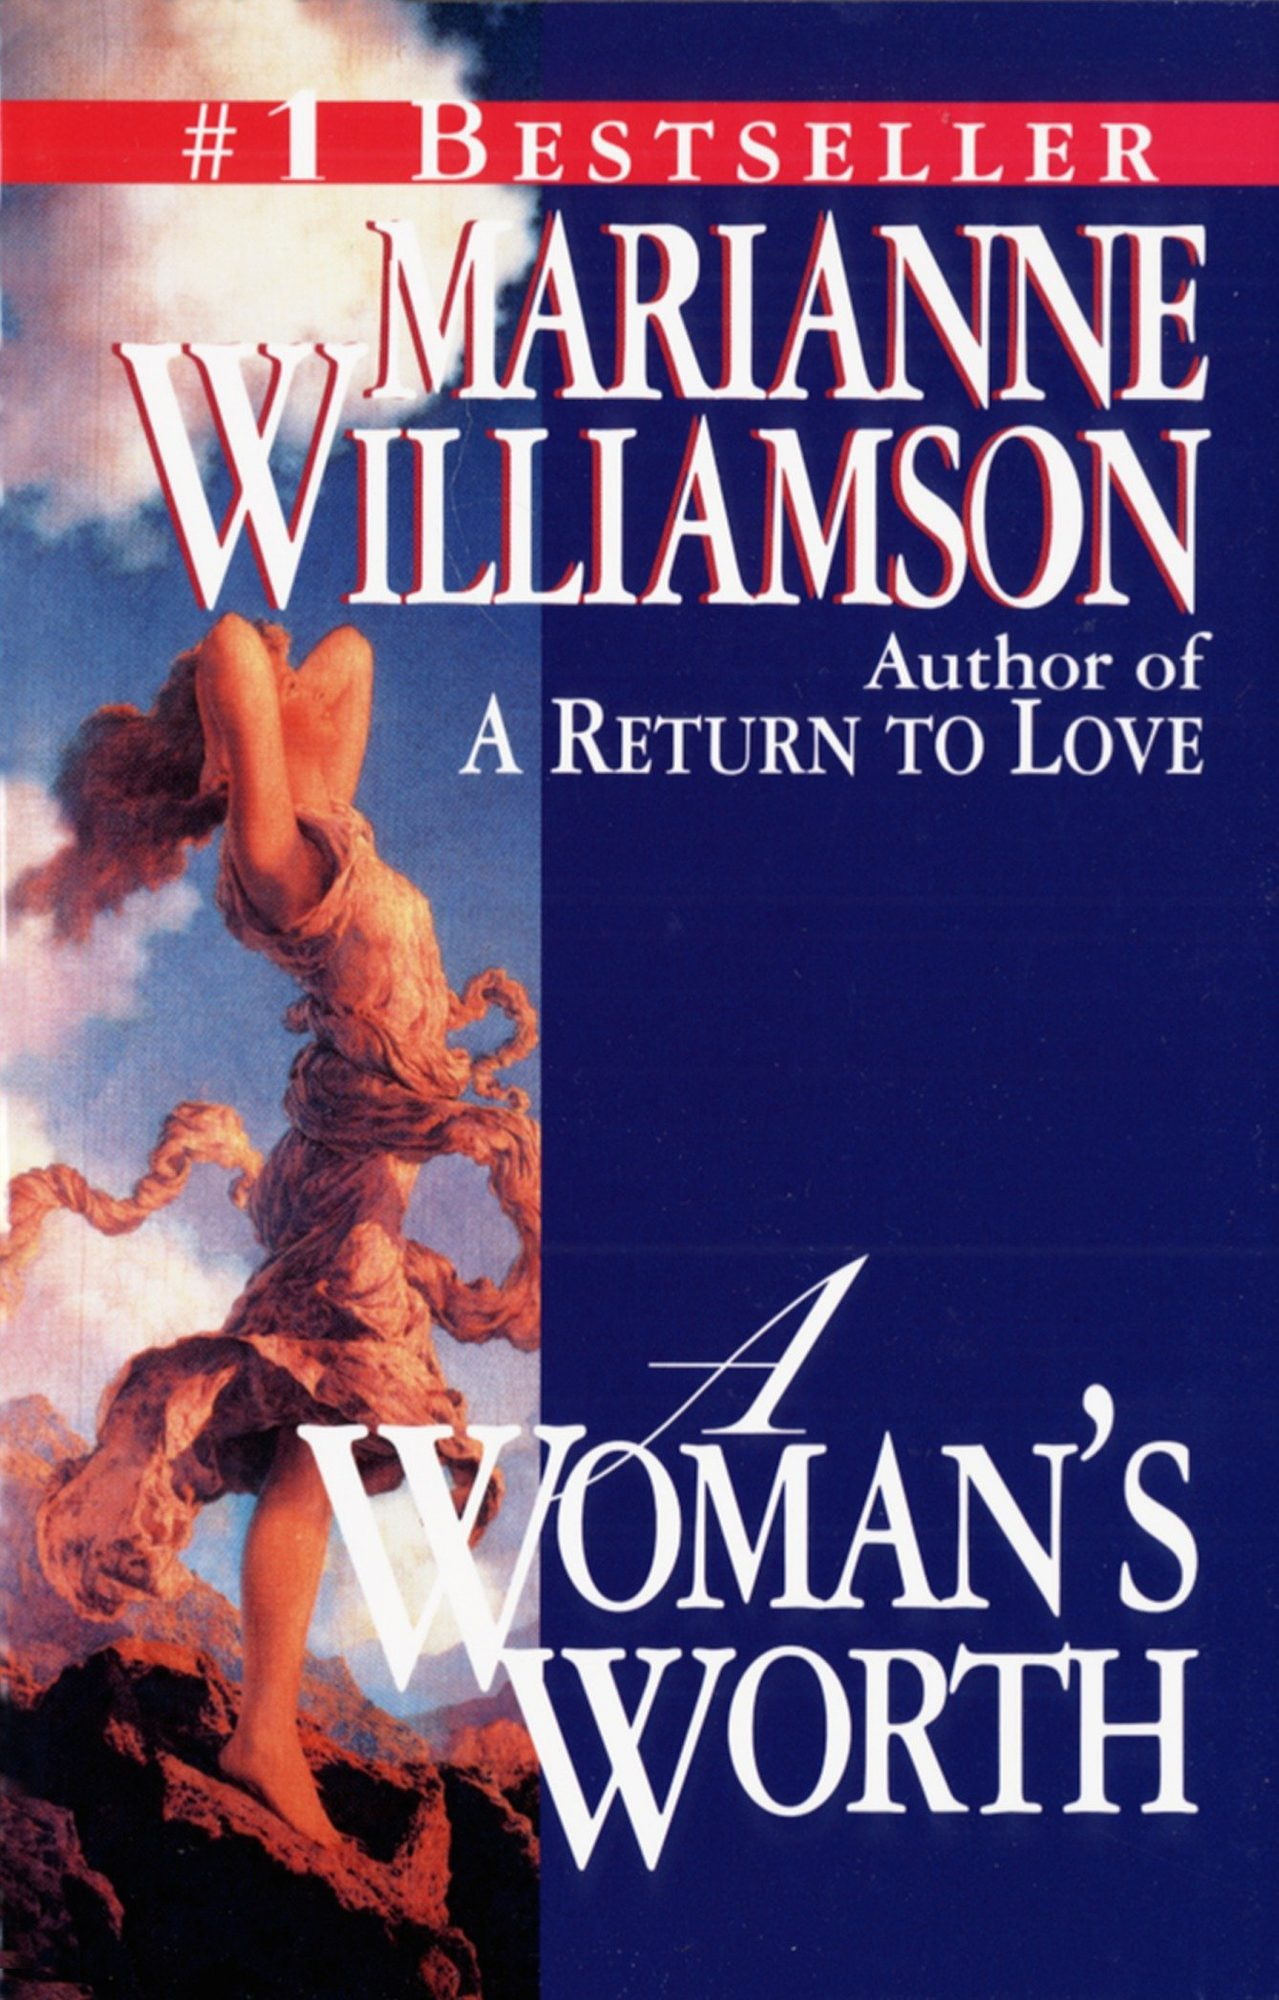 Marianne Williamson book covers